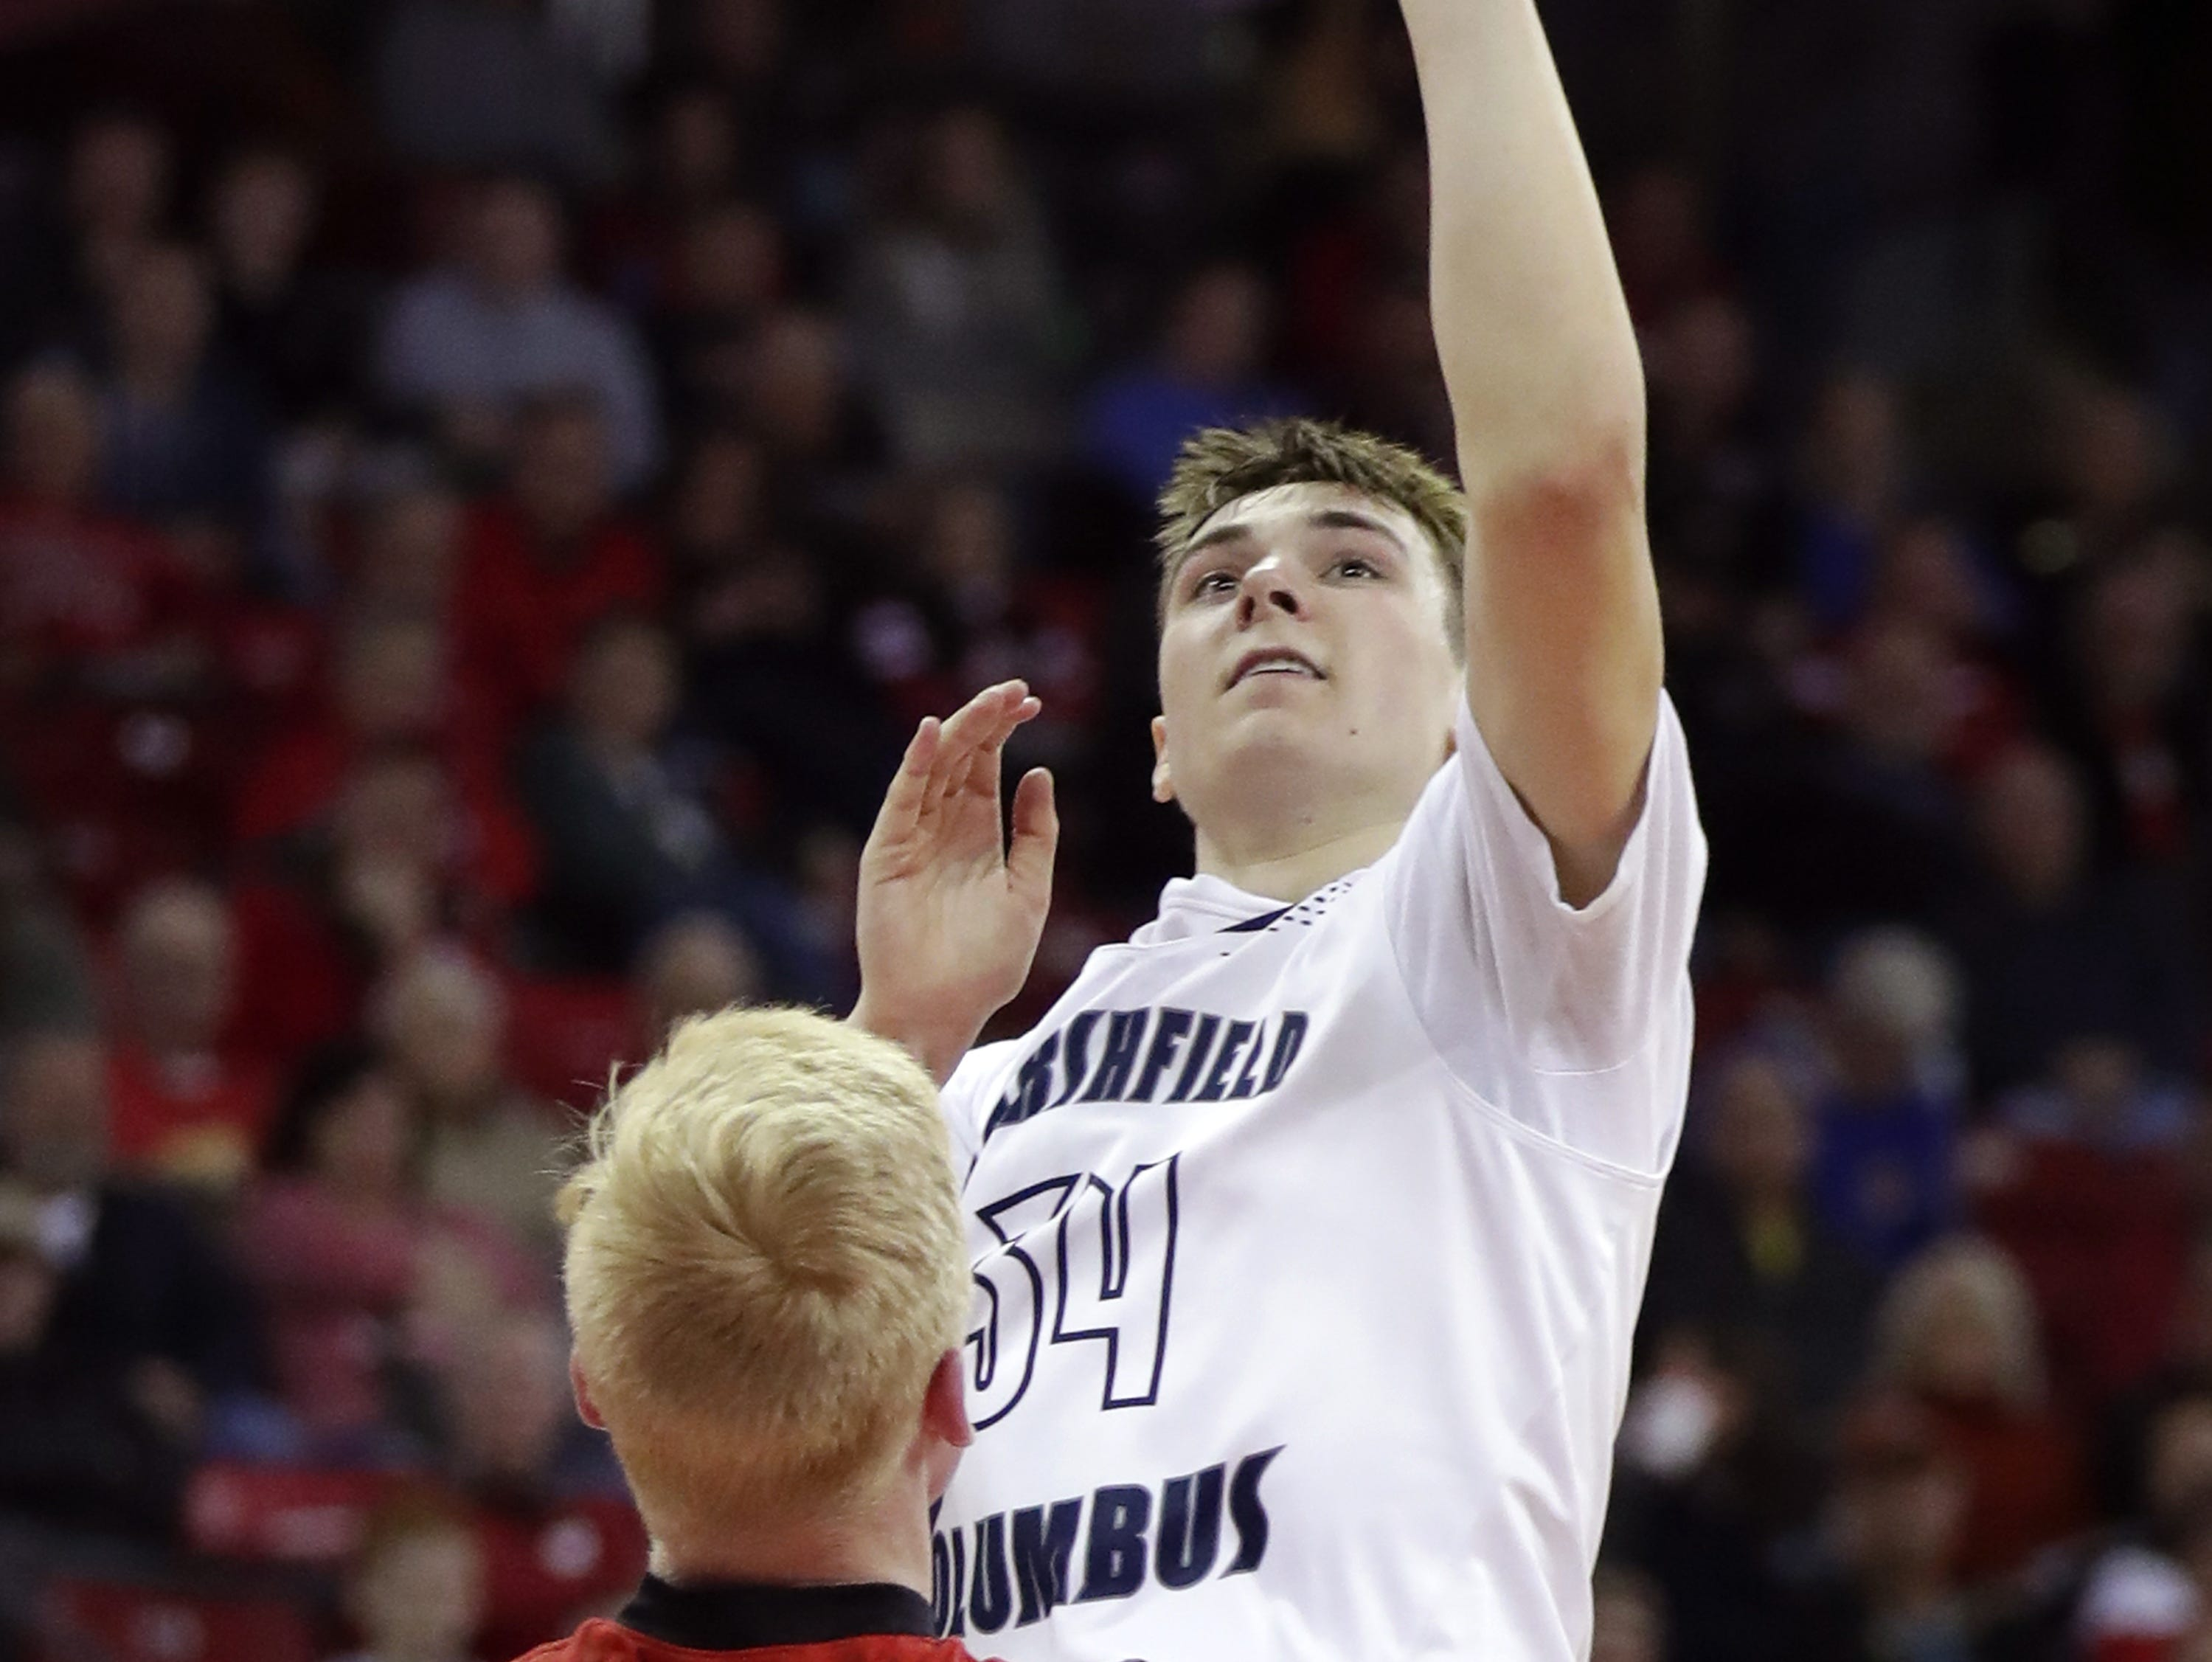 Columbus Catholic High School's #54 Jarred Mandel against Bangor High School's #35 Grant Manke during their WIAA Division 5 boys basketball state semifinal on Friday, March 15, 2019, at the Kohl Center in Madison, Wis. Clumbus defeated Bangor 69 to 66. Wm. Glasheen/USA TODAY NETWORK-Wisconsin.